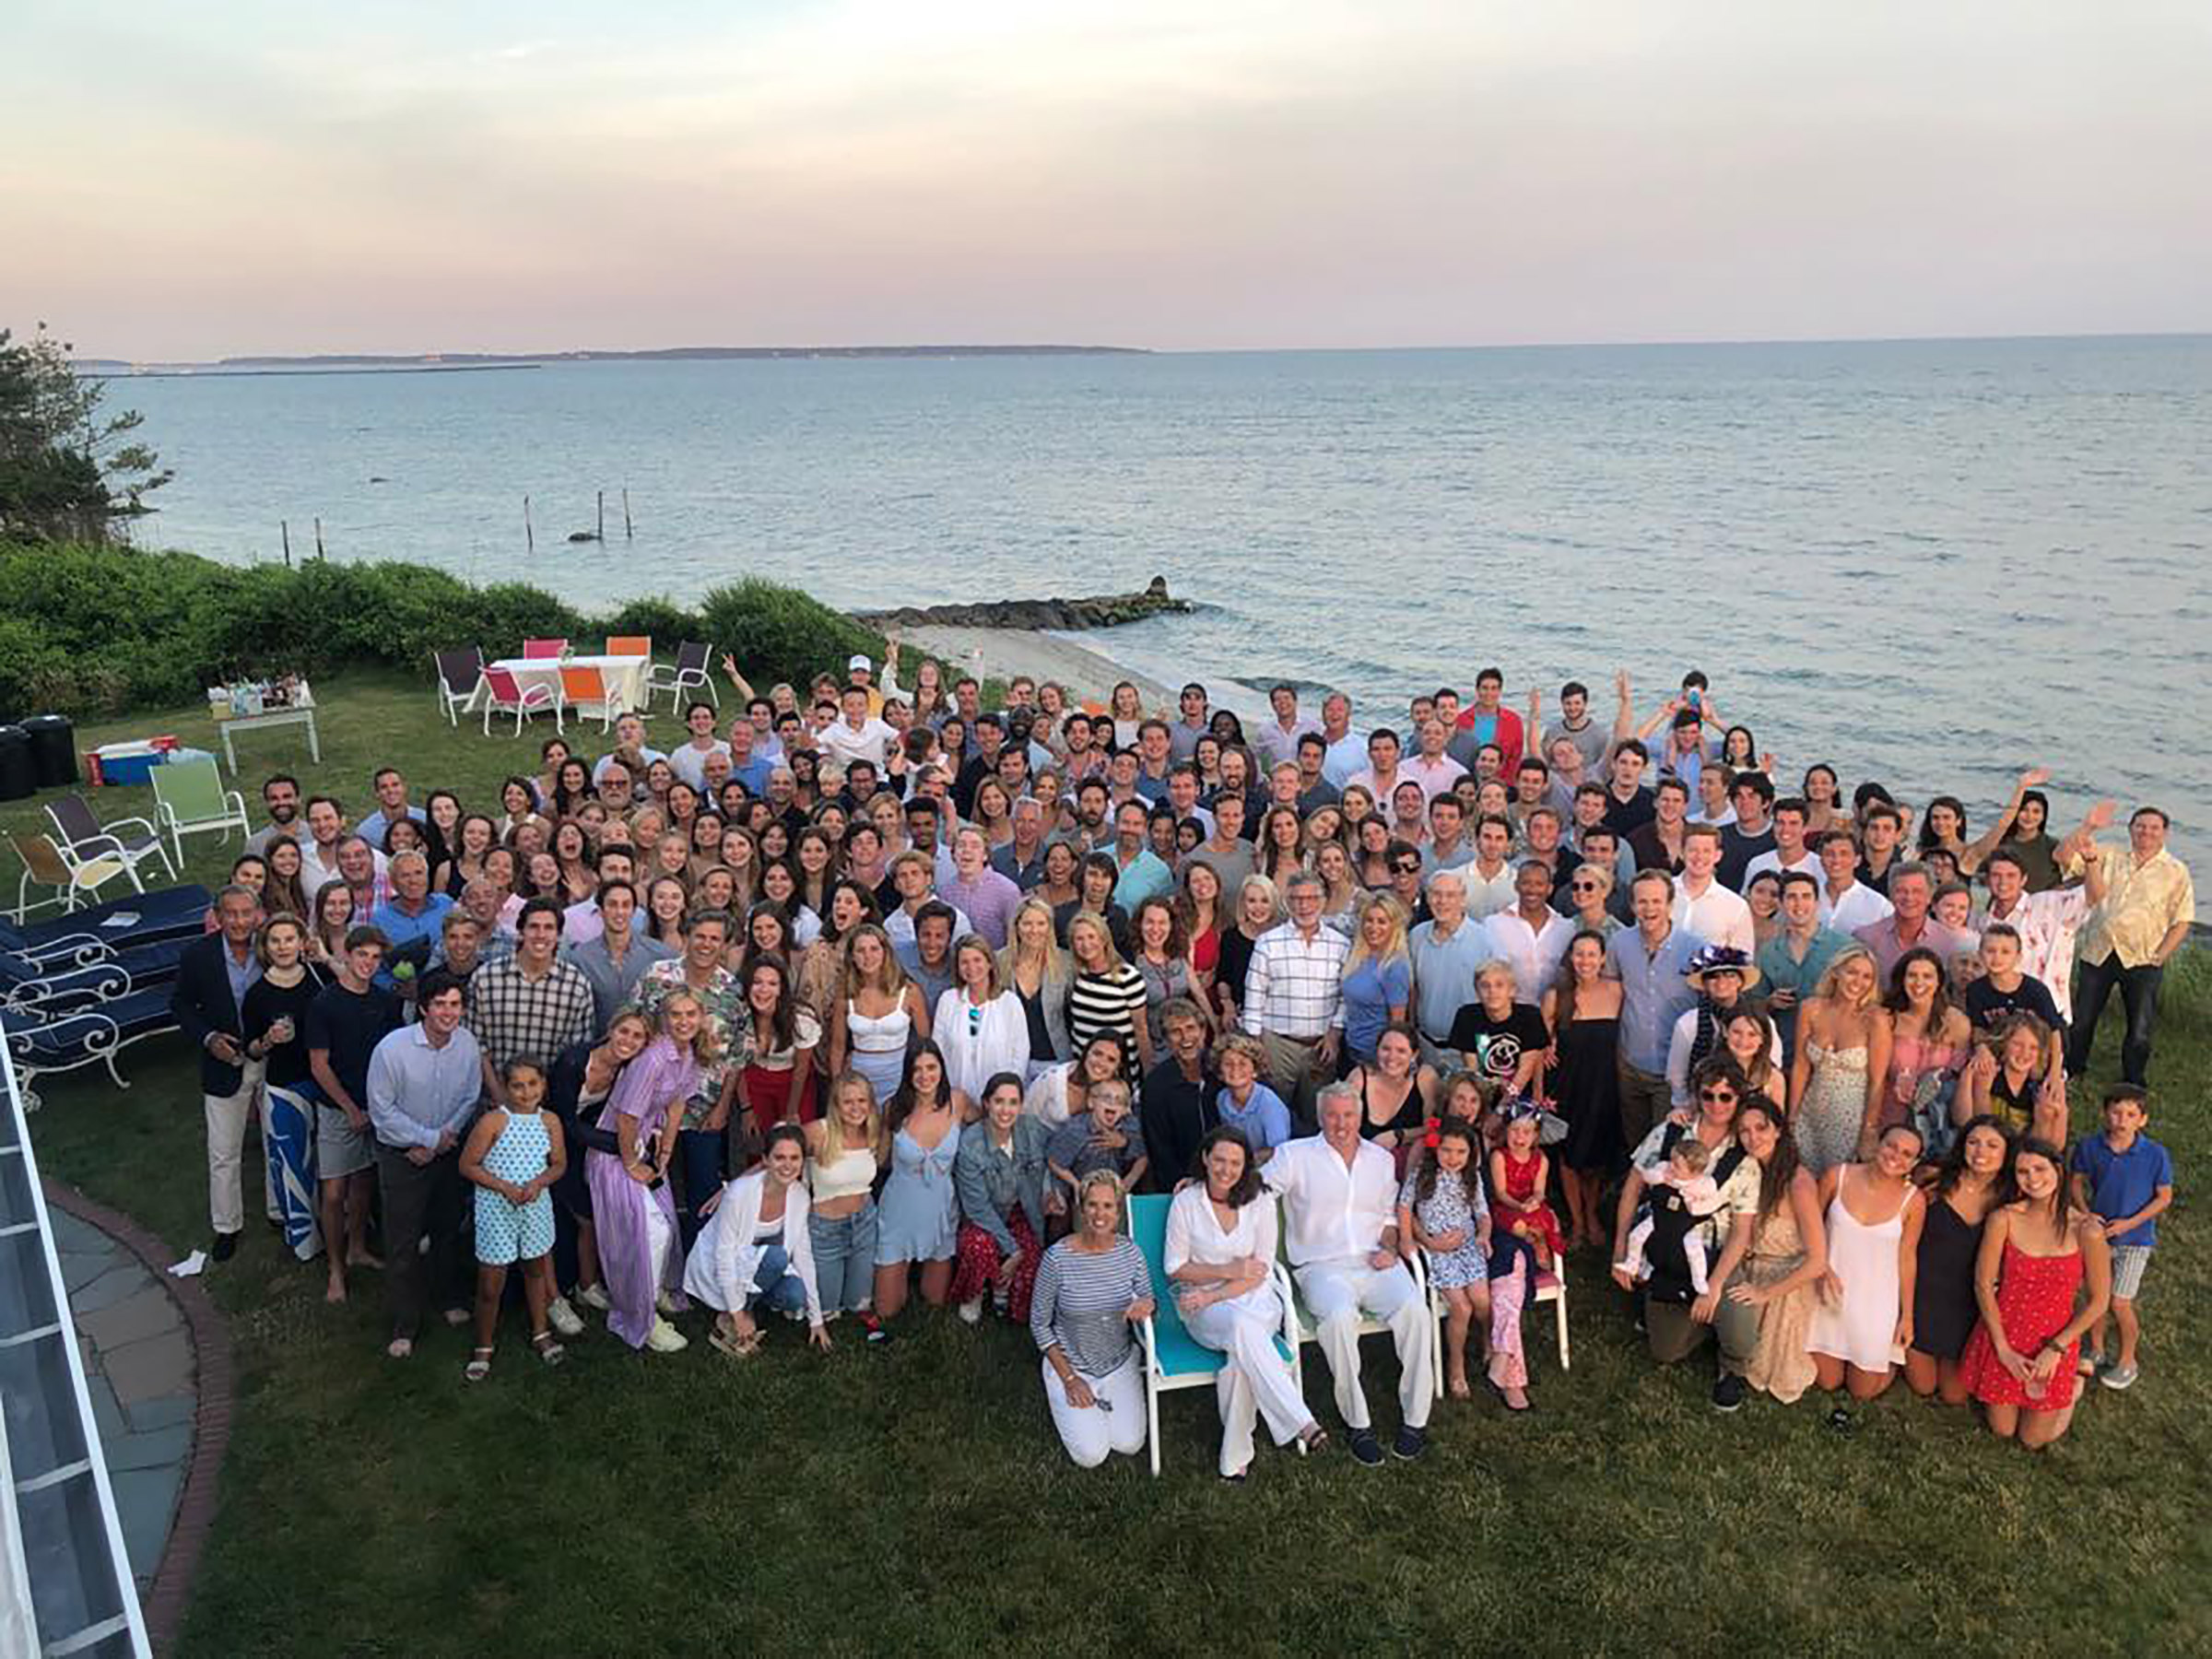 Chris Pratt Joins in Giant Kennedy Family Photo — and Becomes a Perfect Instagram Husband